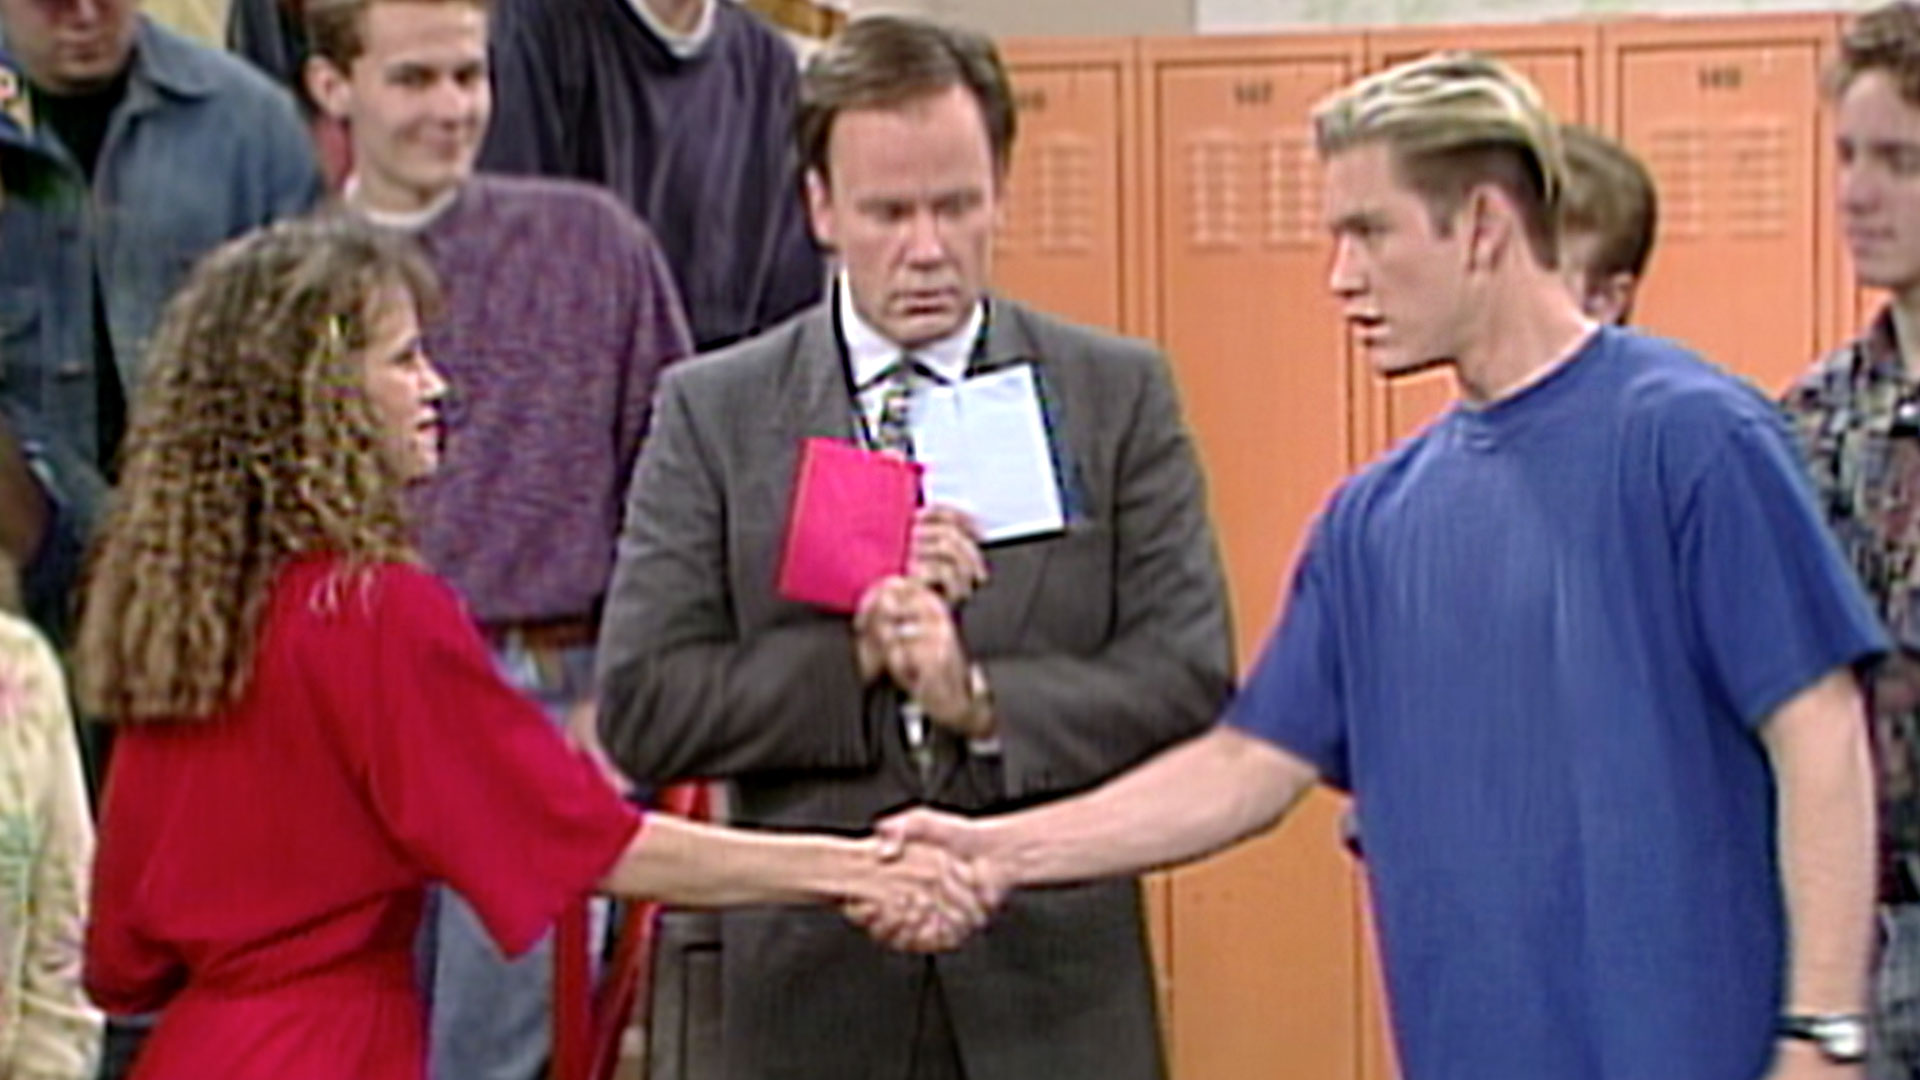 Watch Saved by the Bell Episode: The Will - NBC.com